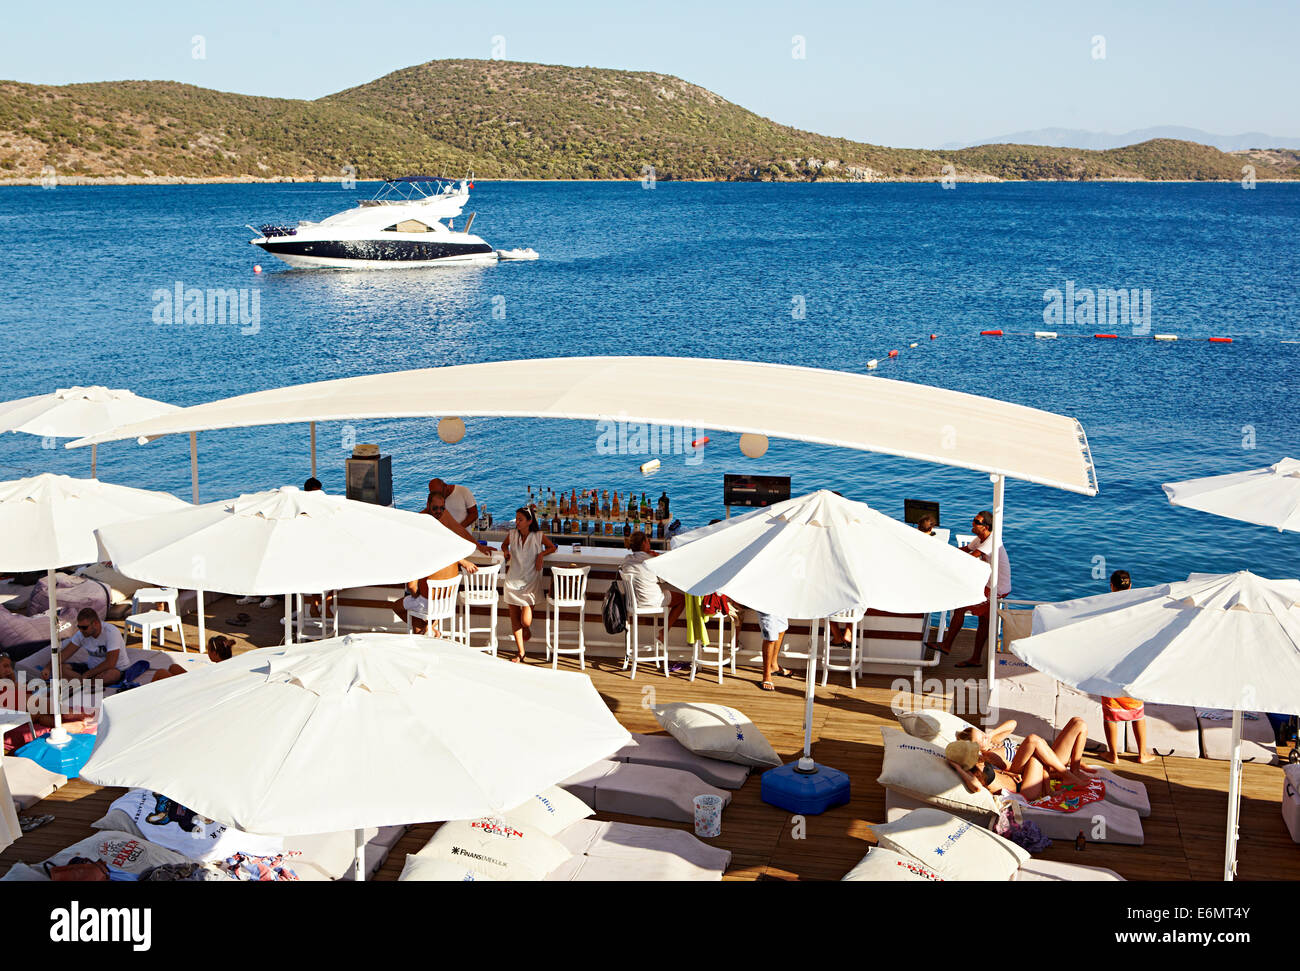 Holiday makers relaxing by the clear blue sea, watching boats go by and enjoying drinks at Beyaz Beach Club, Bitez - Stock Image